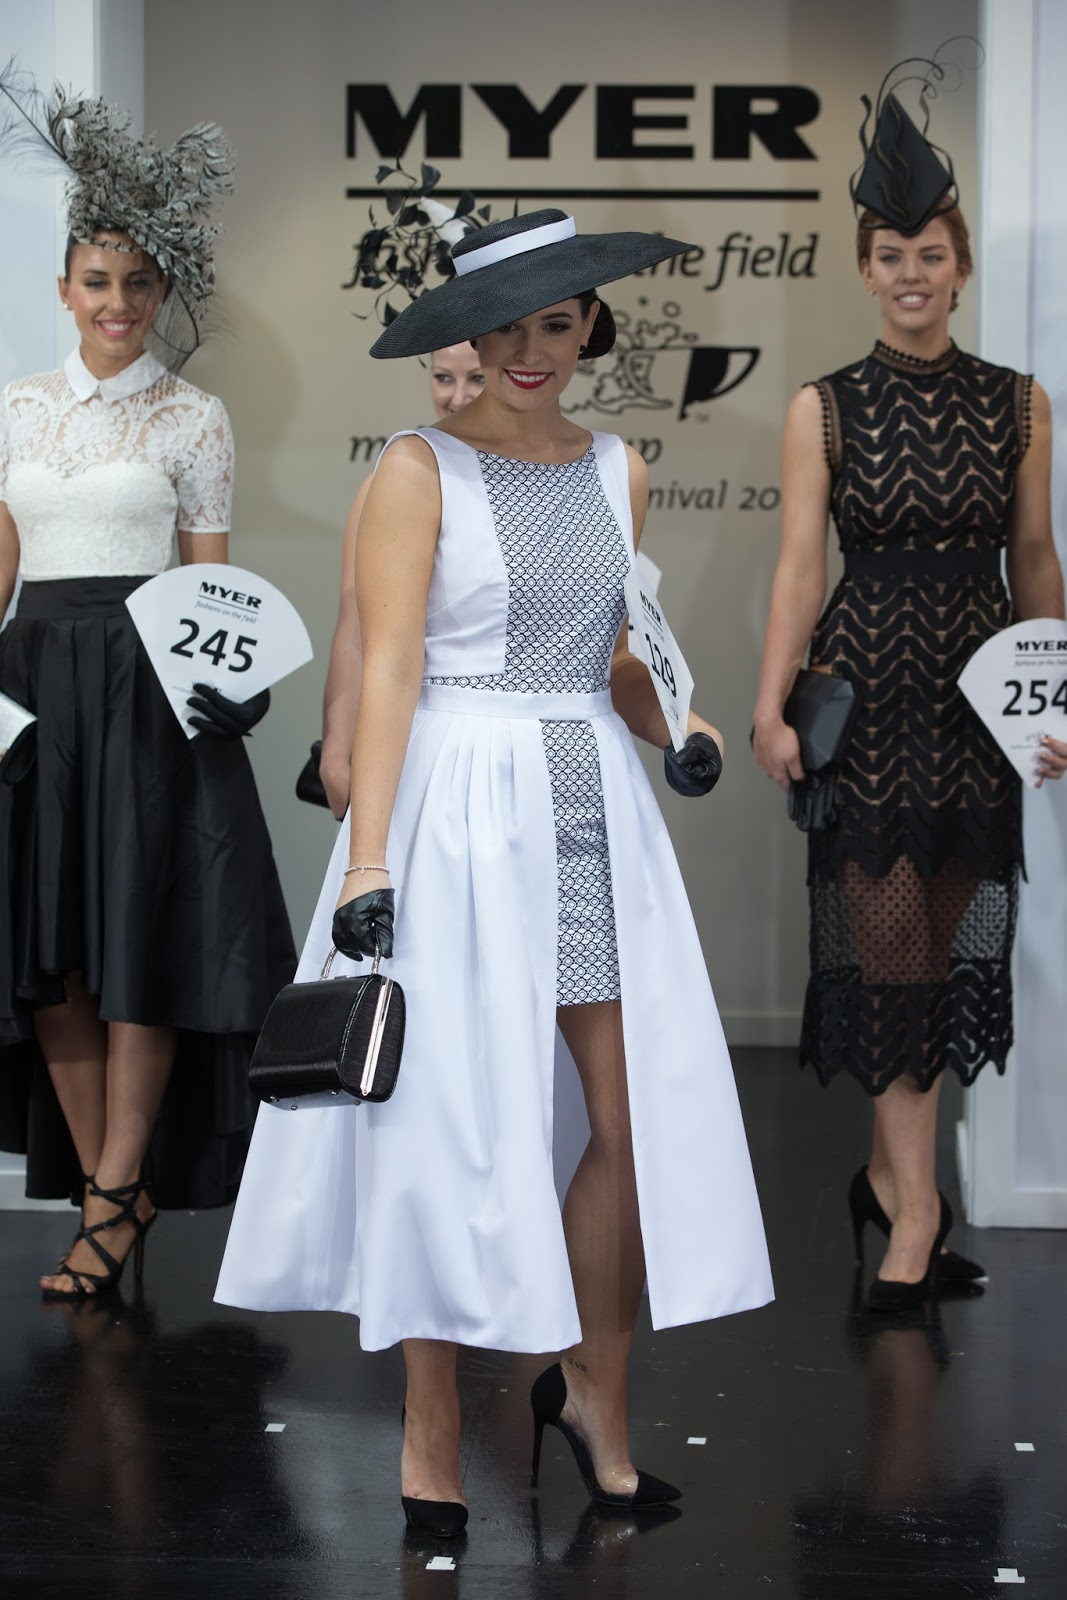 Racing Fashion: Derby Day Fashions On The Field